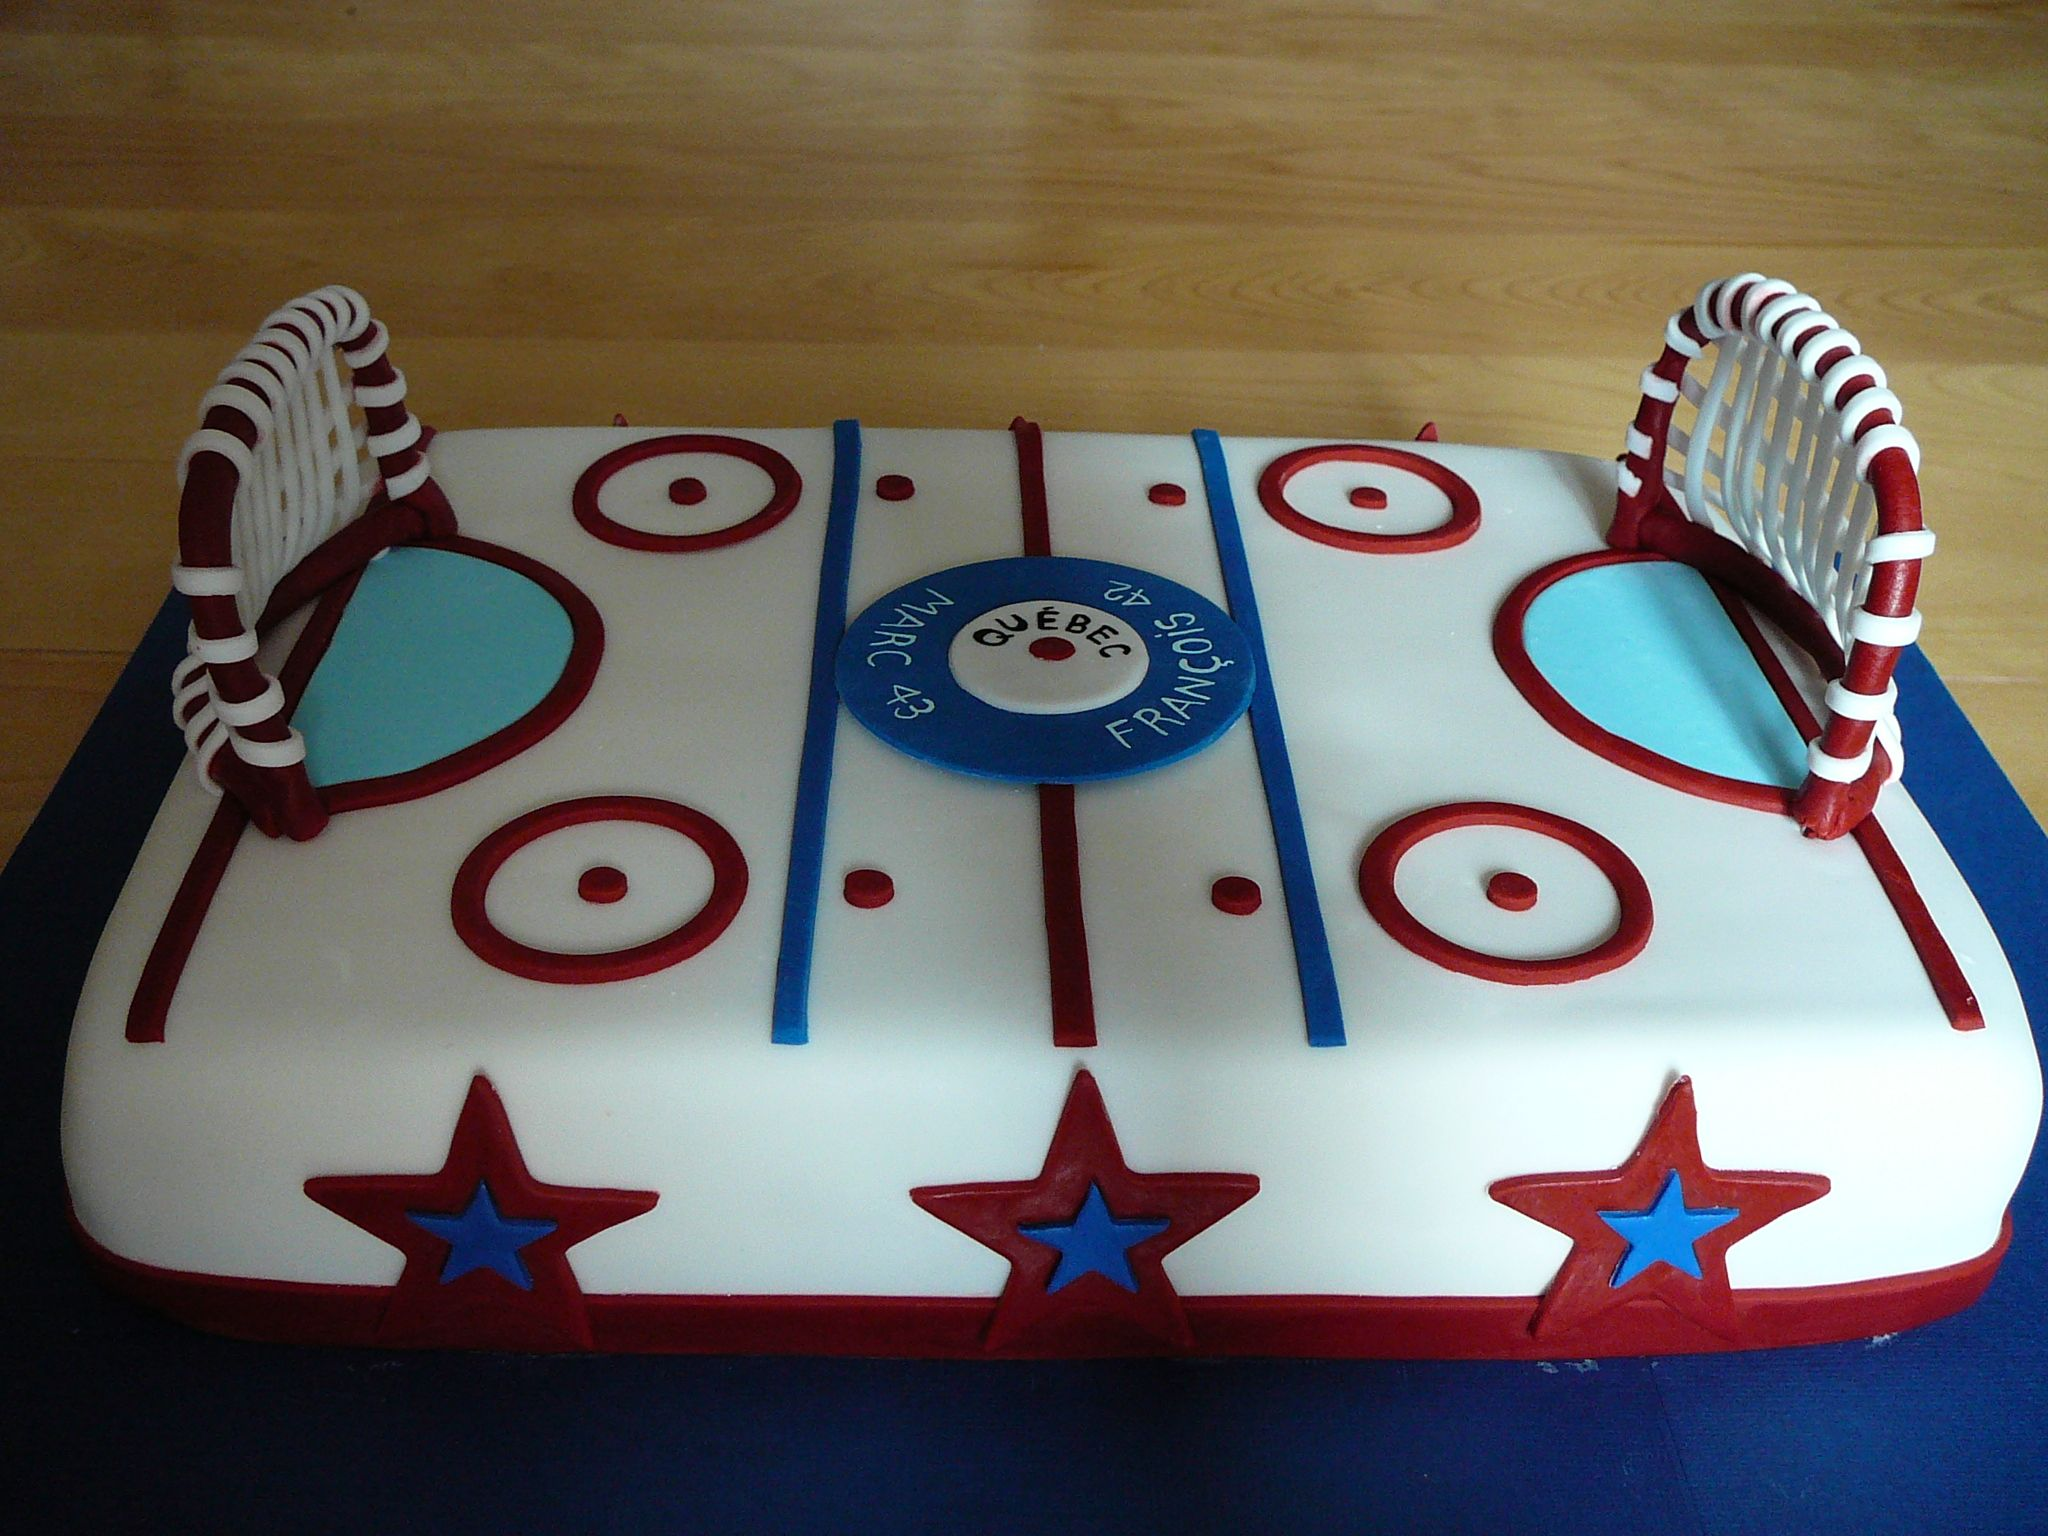 Hockey Rink A hockey rink cake for friends anniversary Marc and